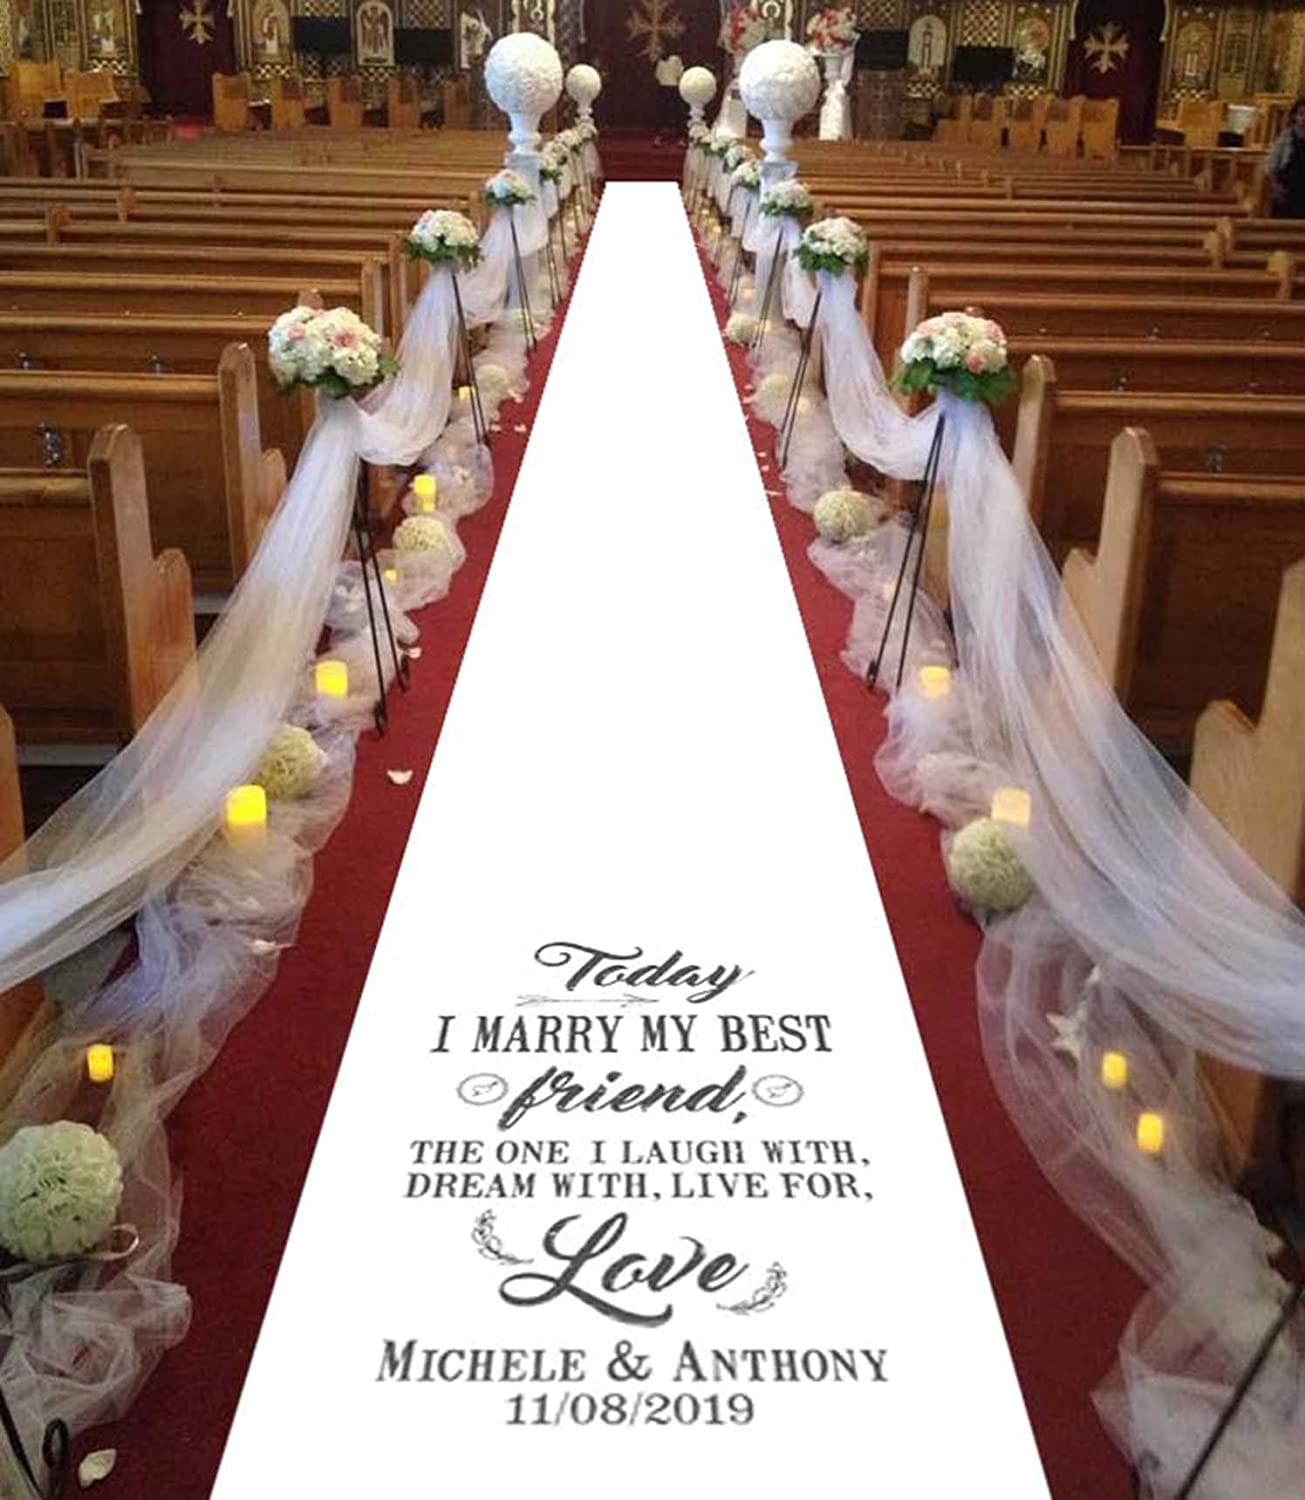 Personalised Wedding Aisle Runner For Ceremony Decor and Wedding Venue  Decoration - Custom Printed Aisle Runner ( Two Souls)